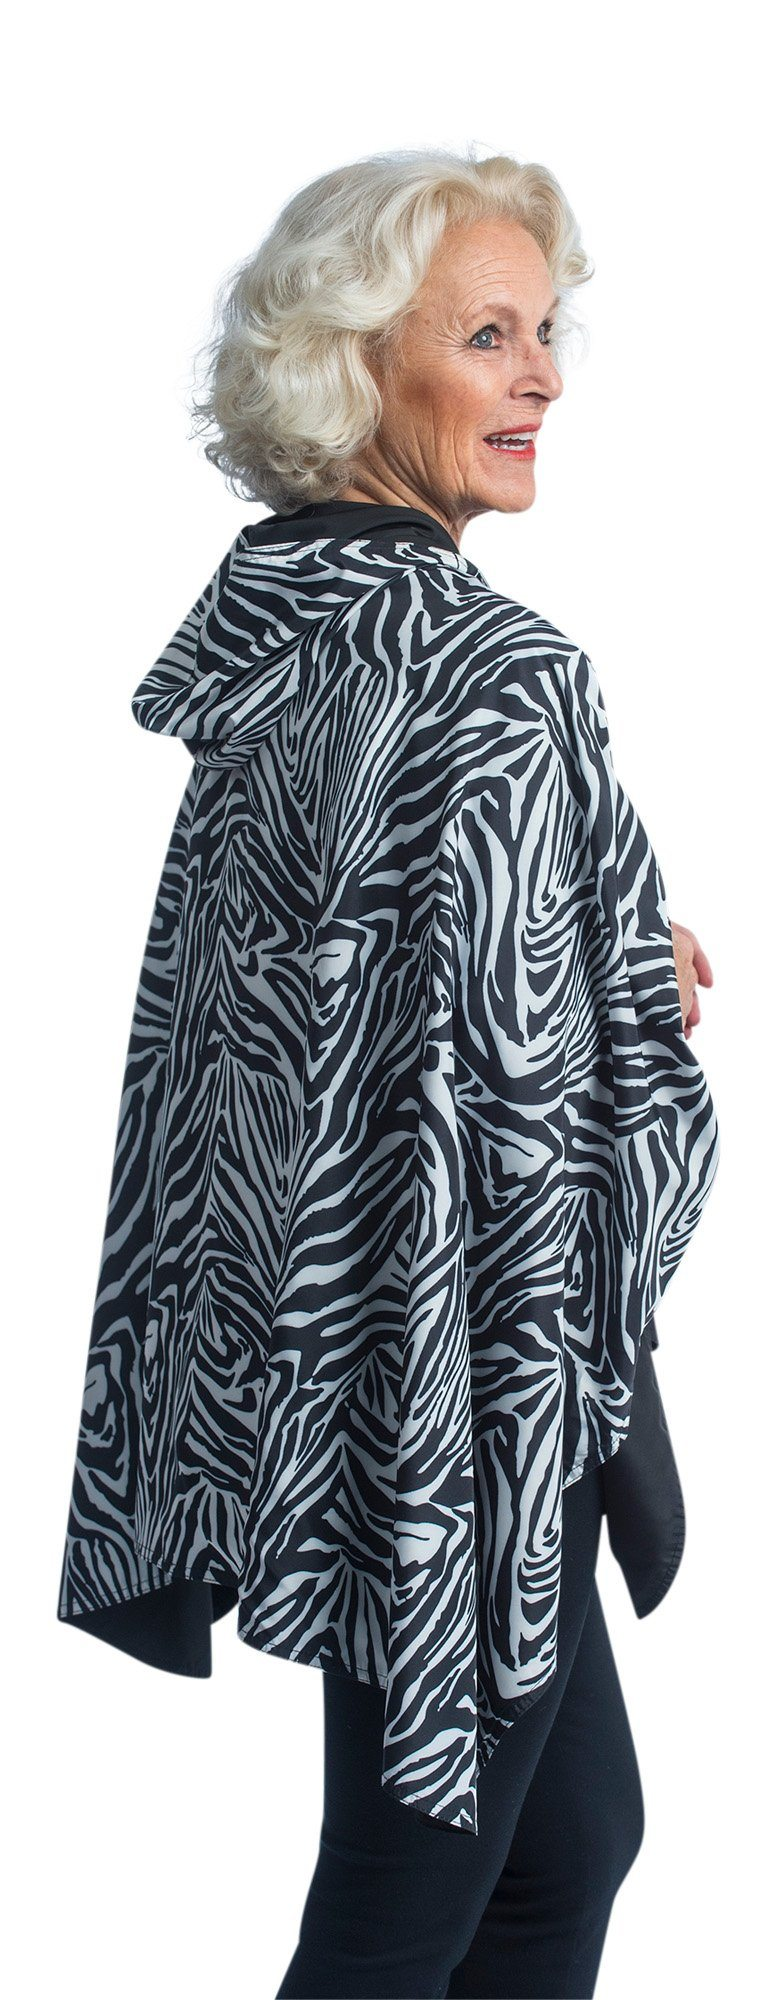 RainCaper Black & Zebra - Last One! on SALE now only $59.99